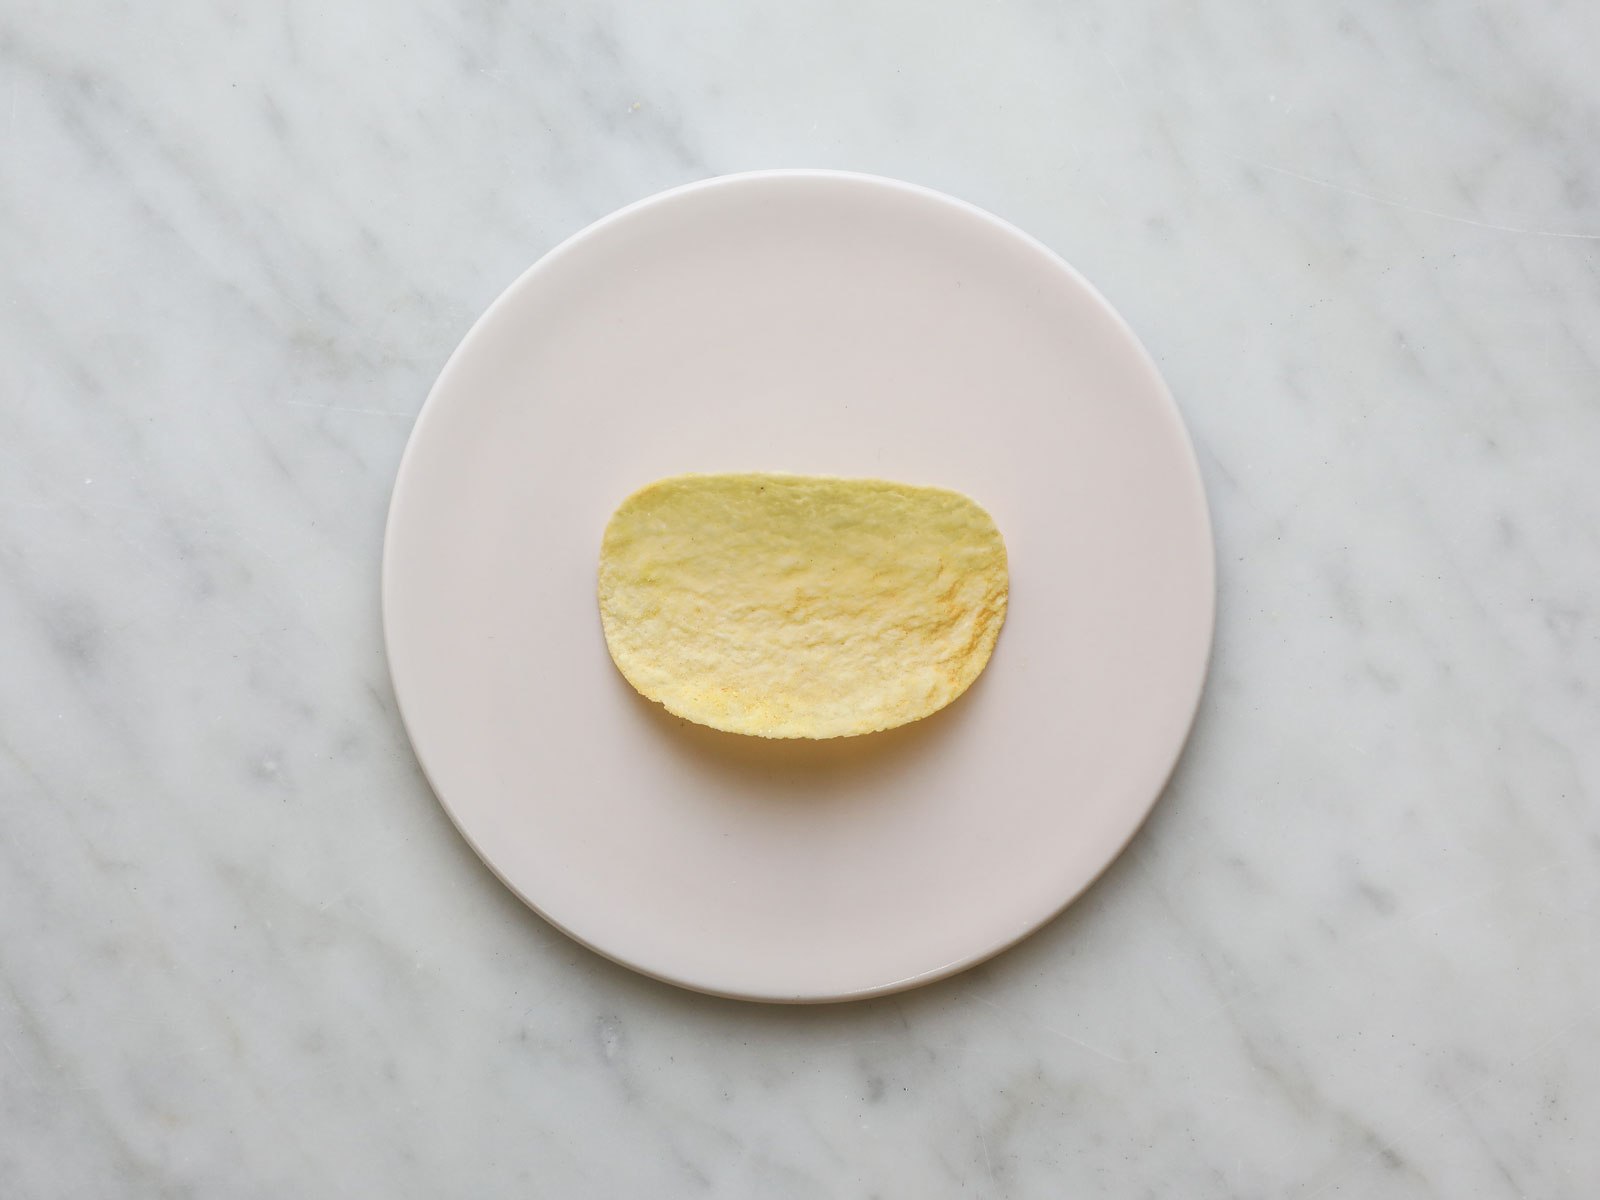 Cheddar and Sour Cream Pringles